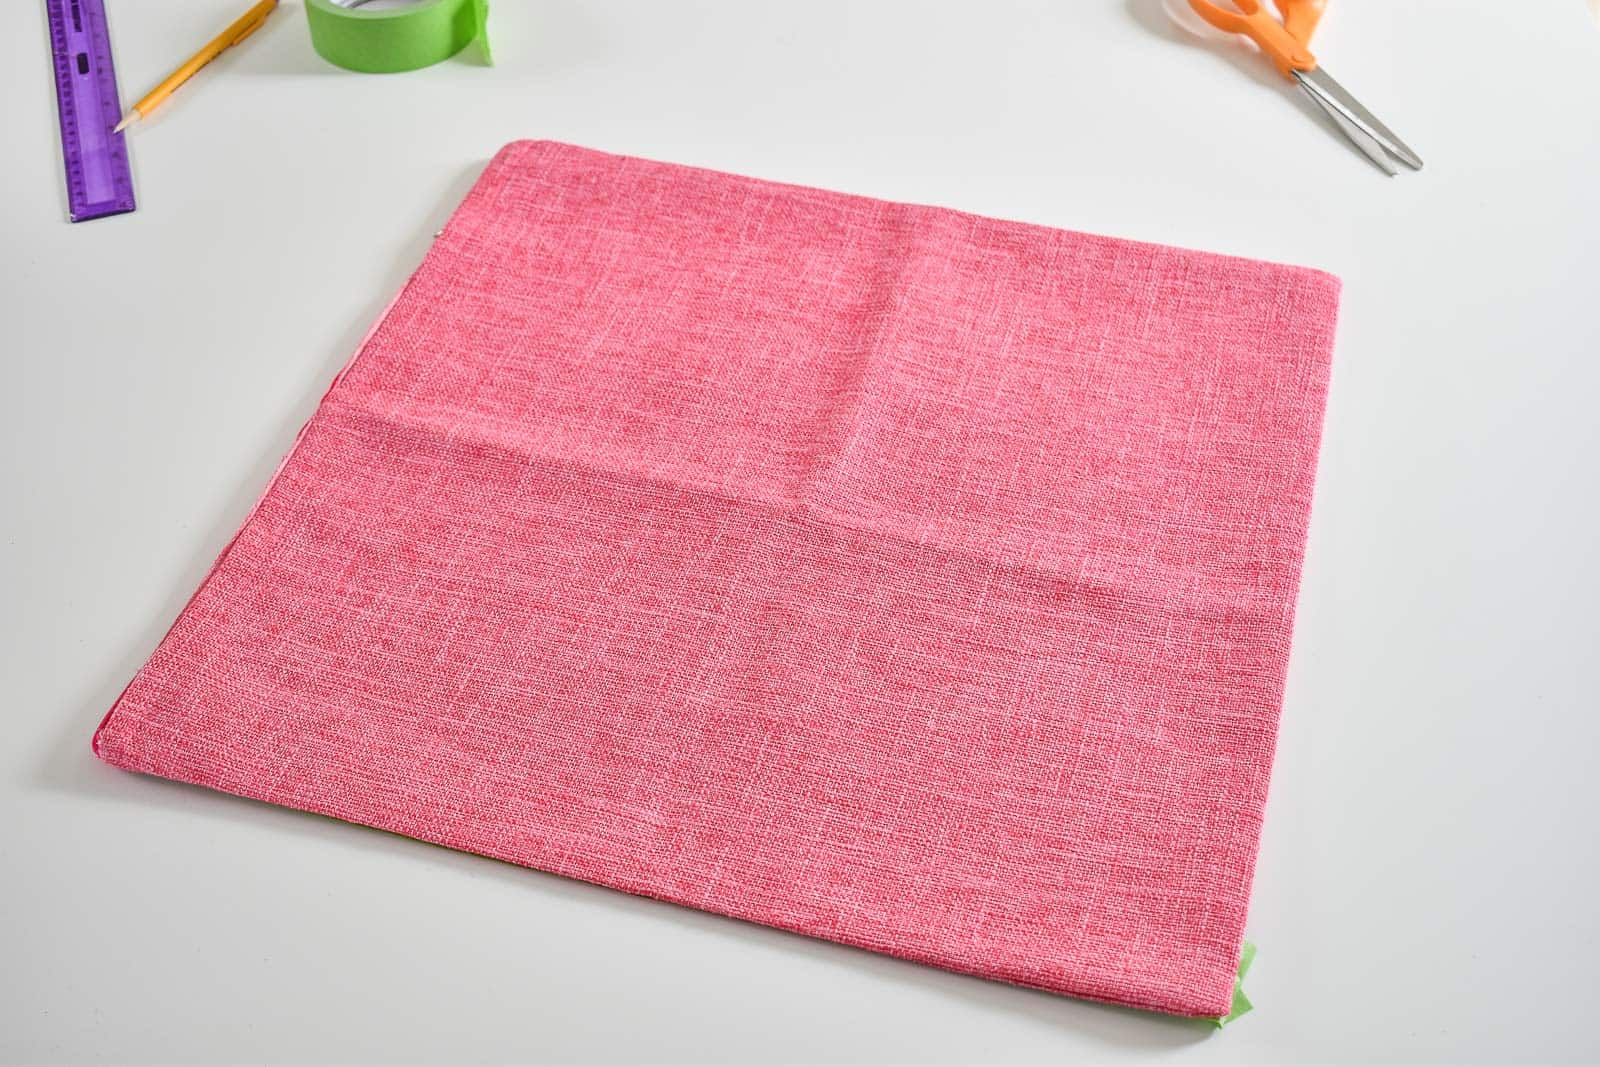 plain pink Amazon pillow